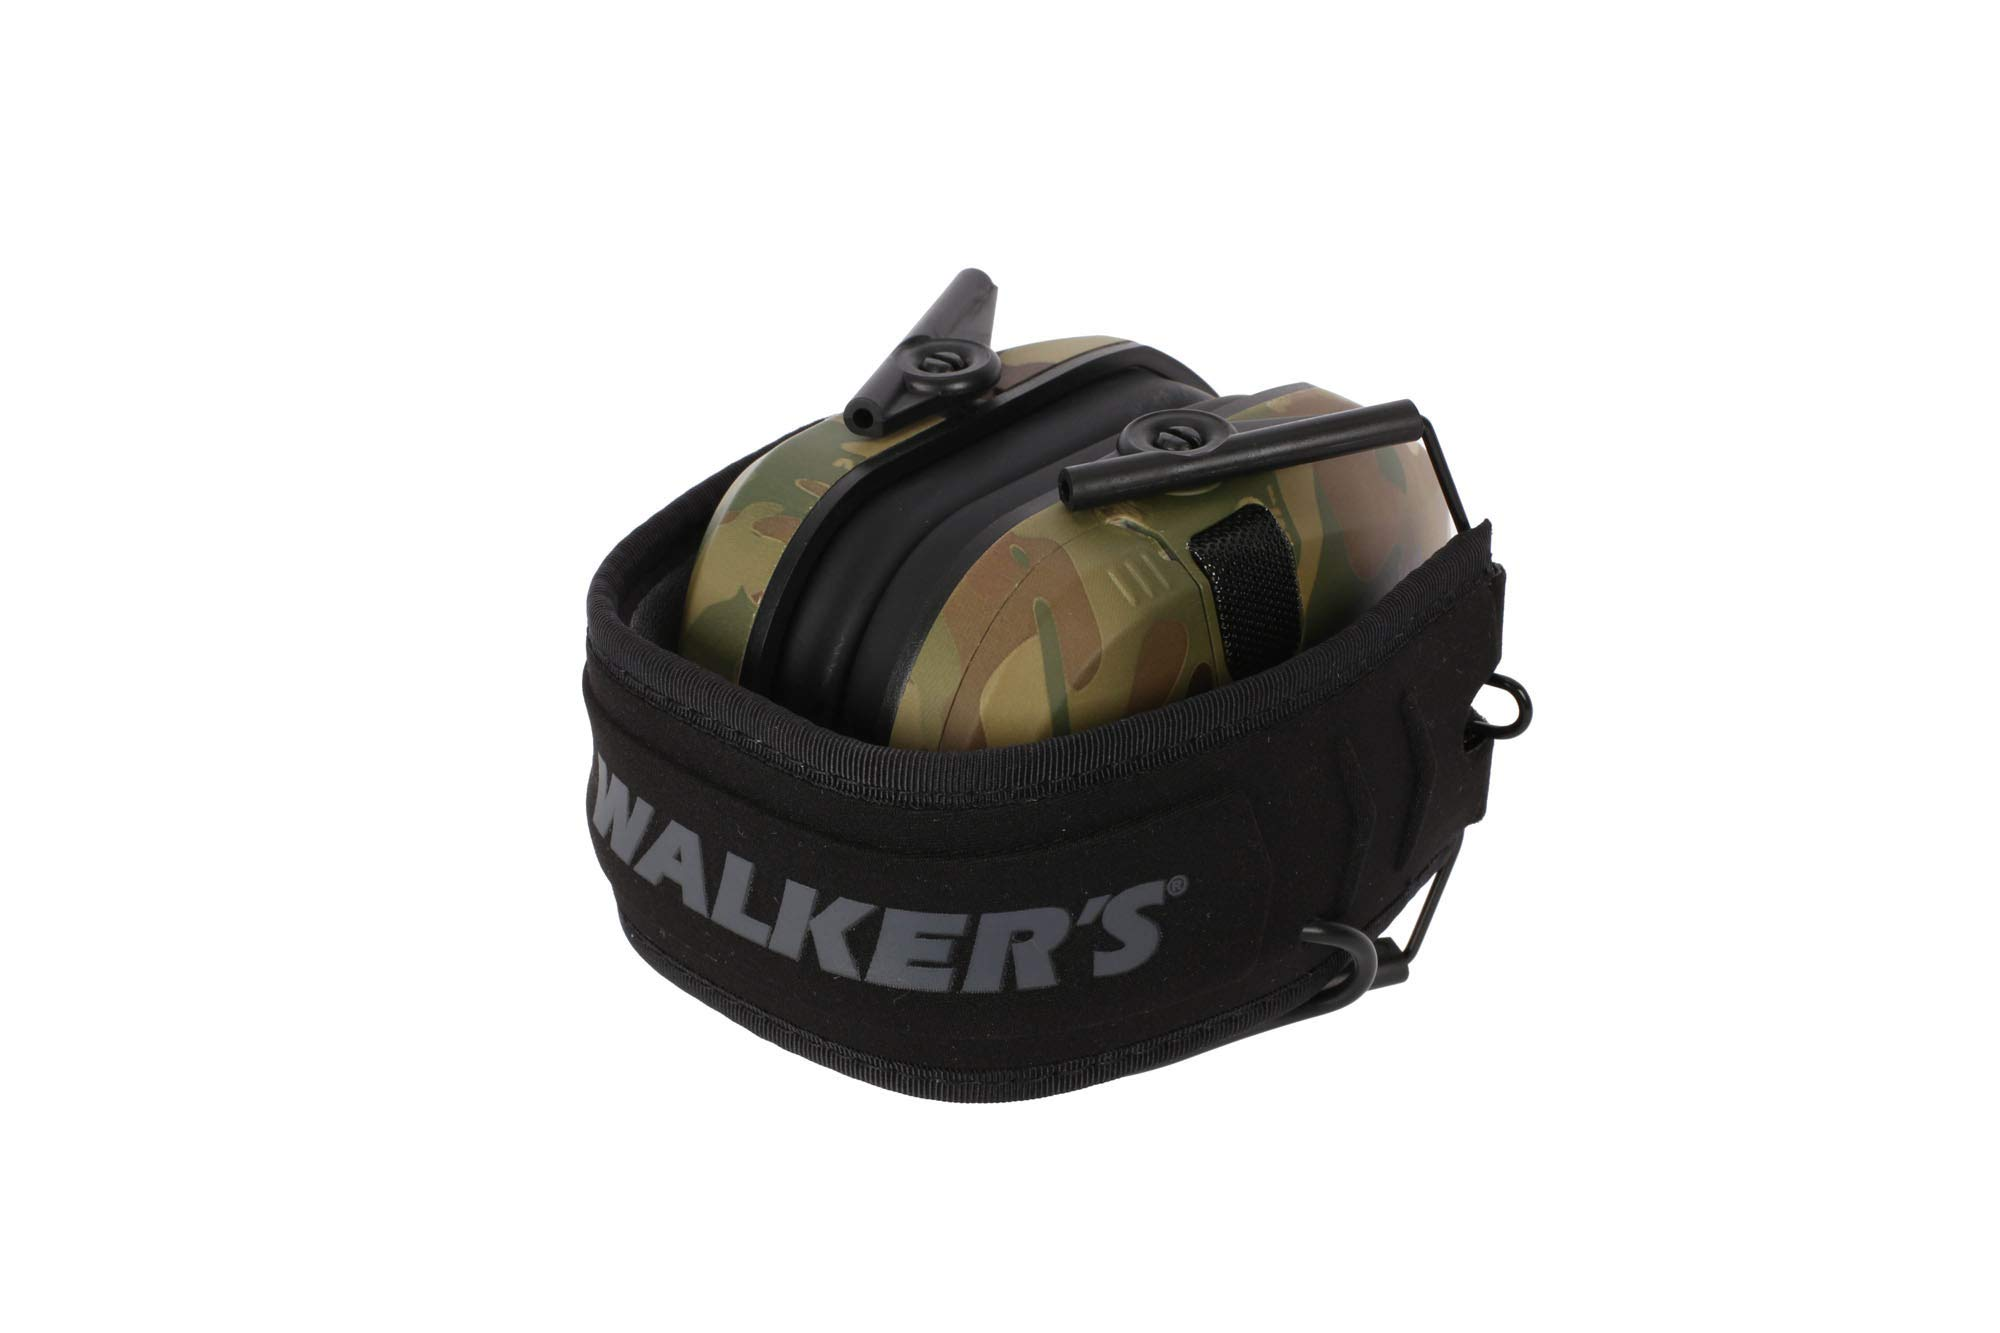 Walkers Razor Slim Electronic Shooting Hearing Protection Muff, Multicam, Tan (Sound Amplification and Suppression) with Shooting Glasses Kit by Walkers (Image #6)